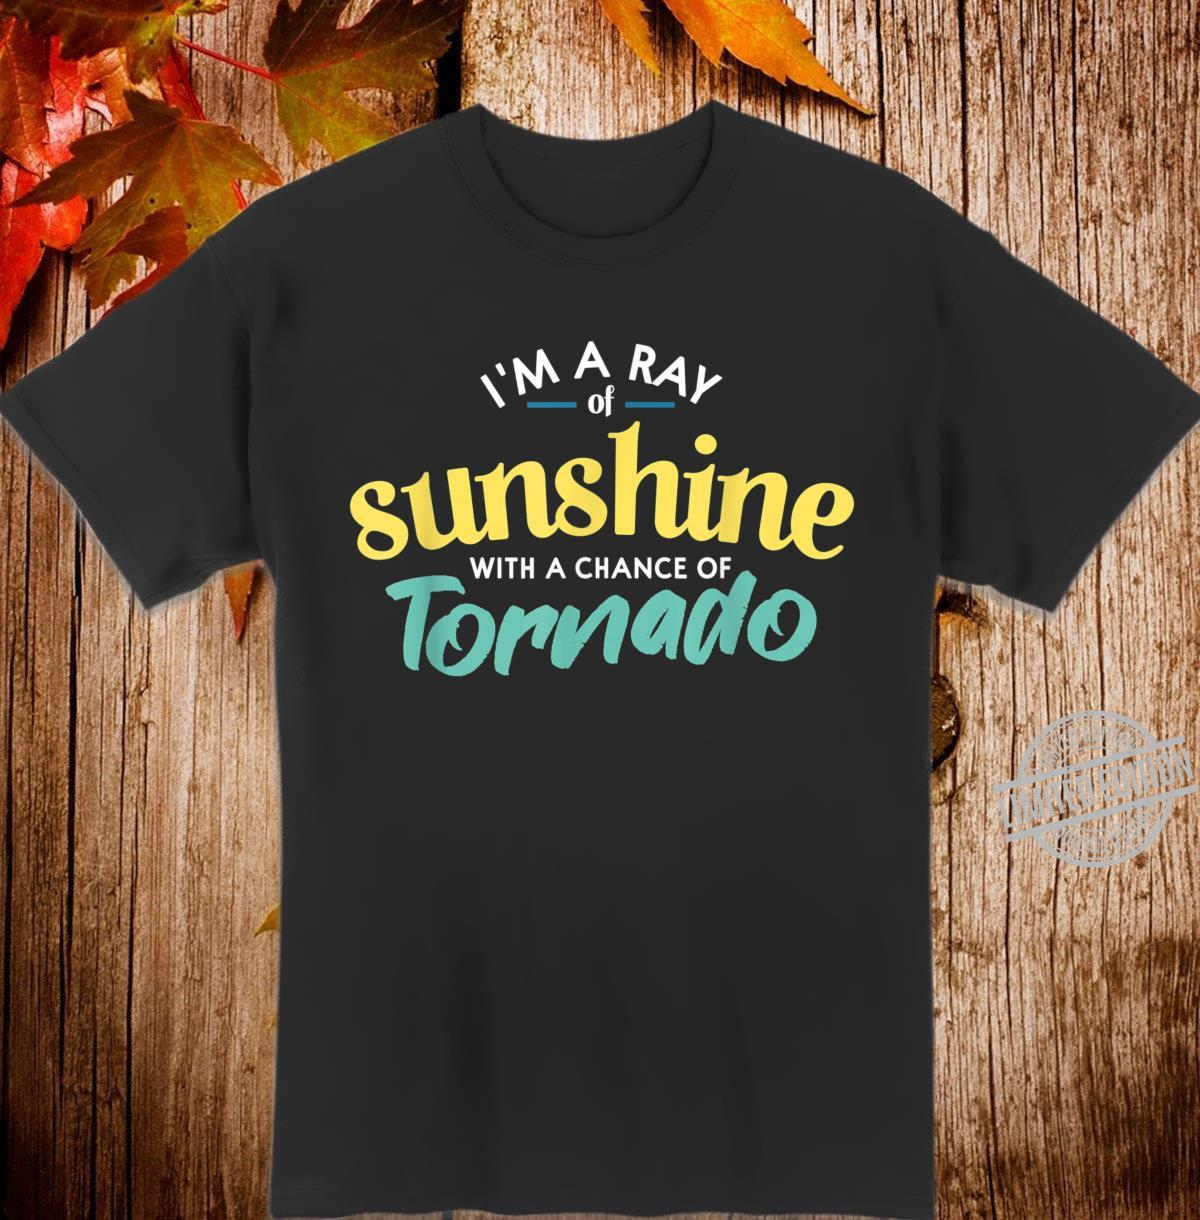 Ray of Sunshine with a Chance of Tornado TS Shirt